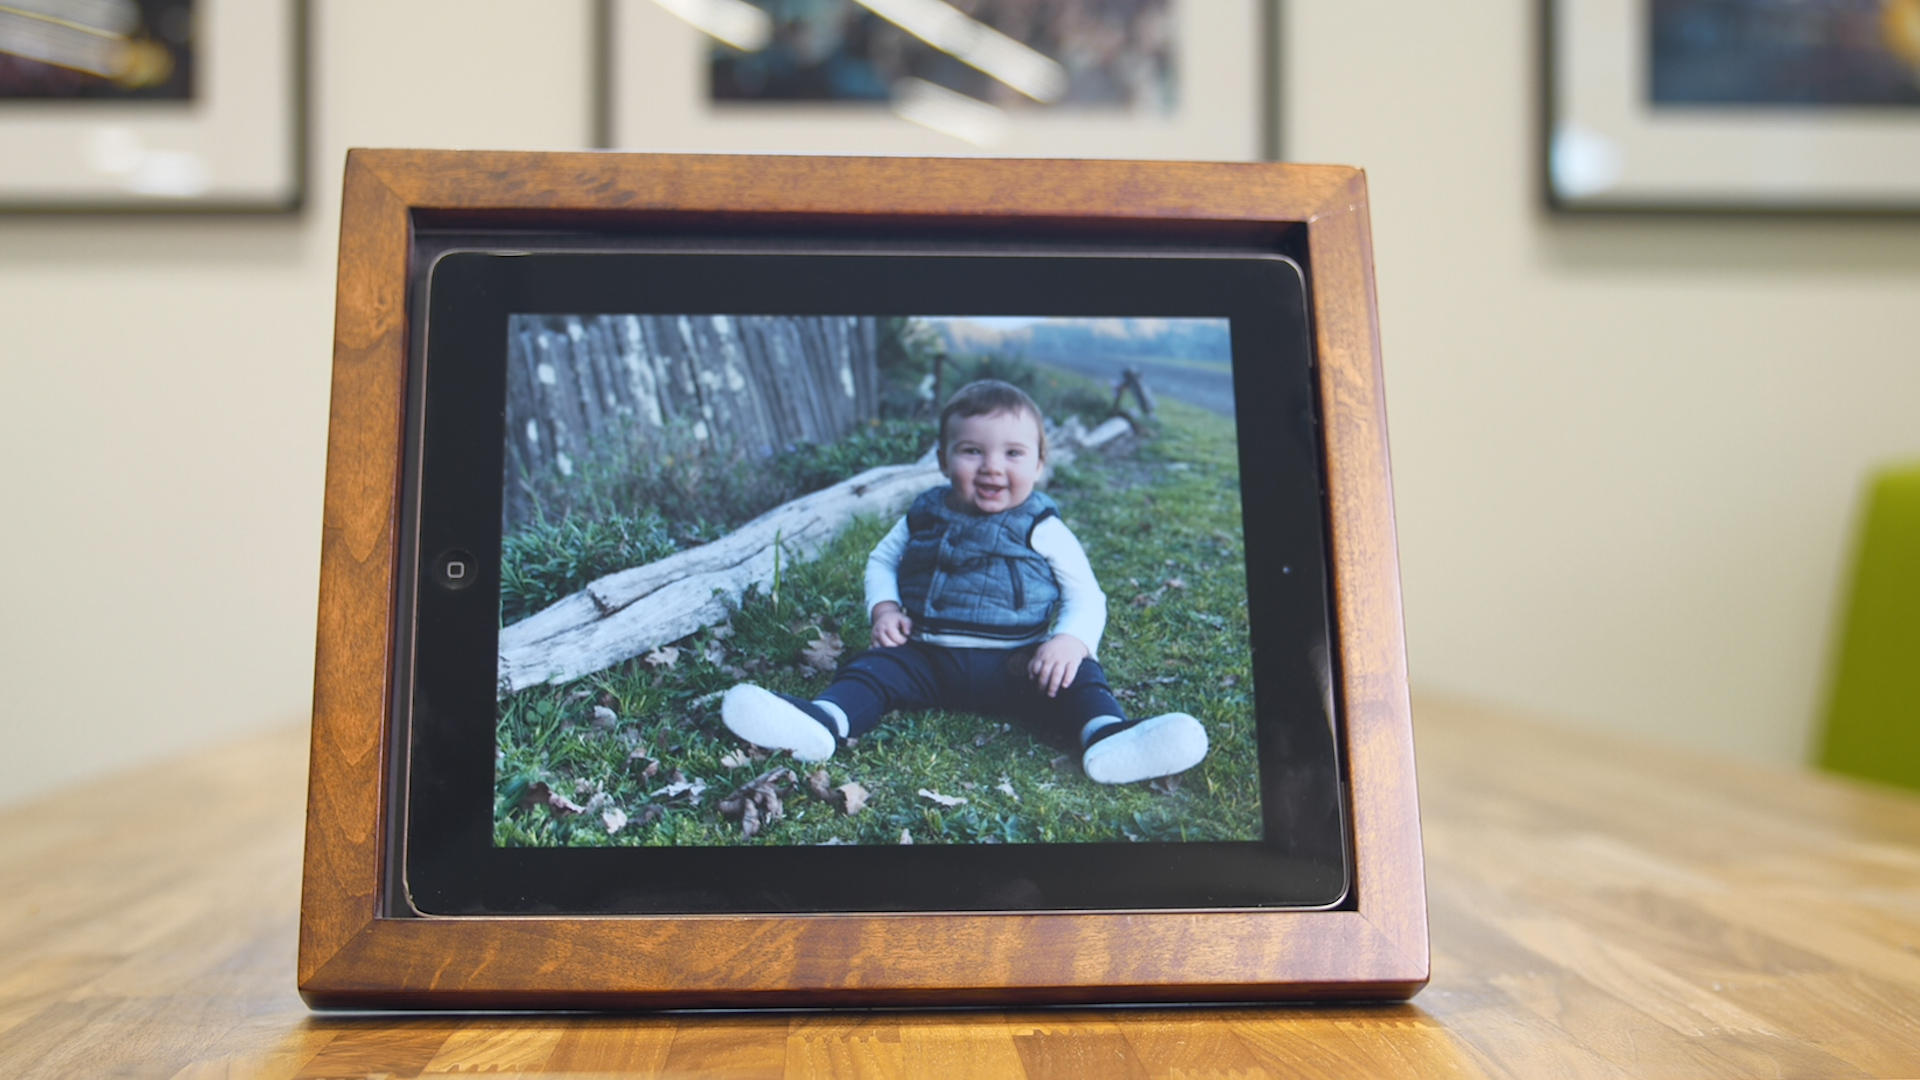 Video: Create a digital picture frame using an old iPad